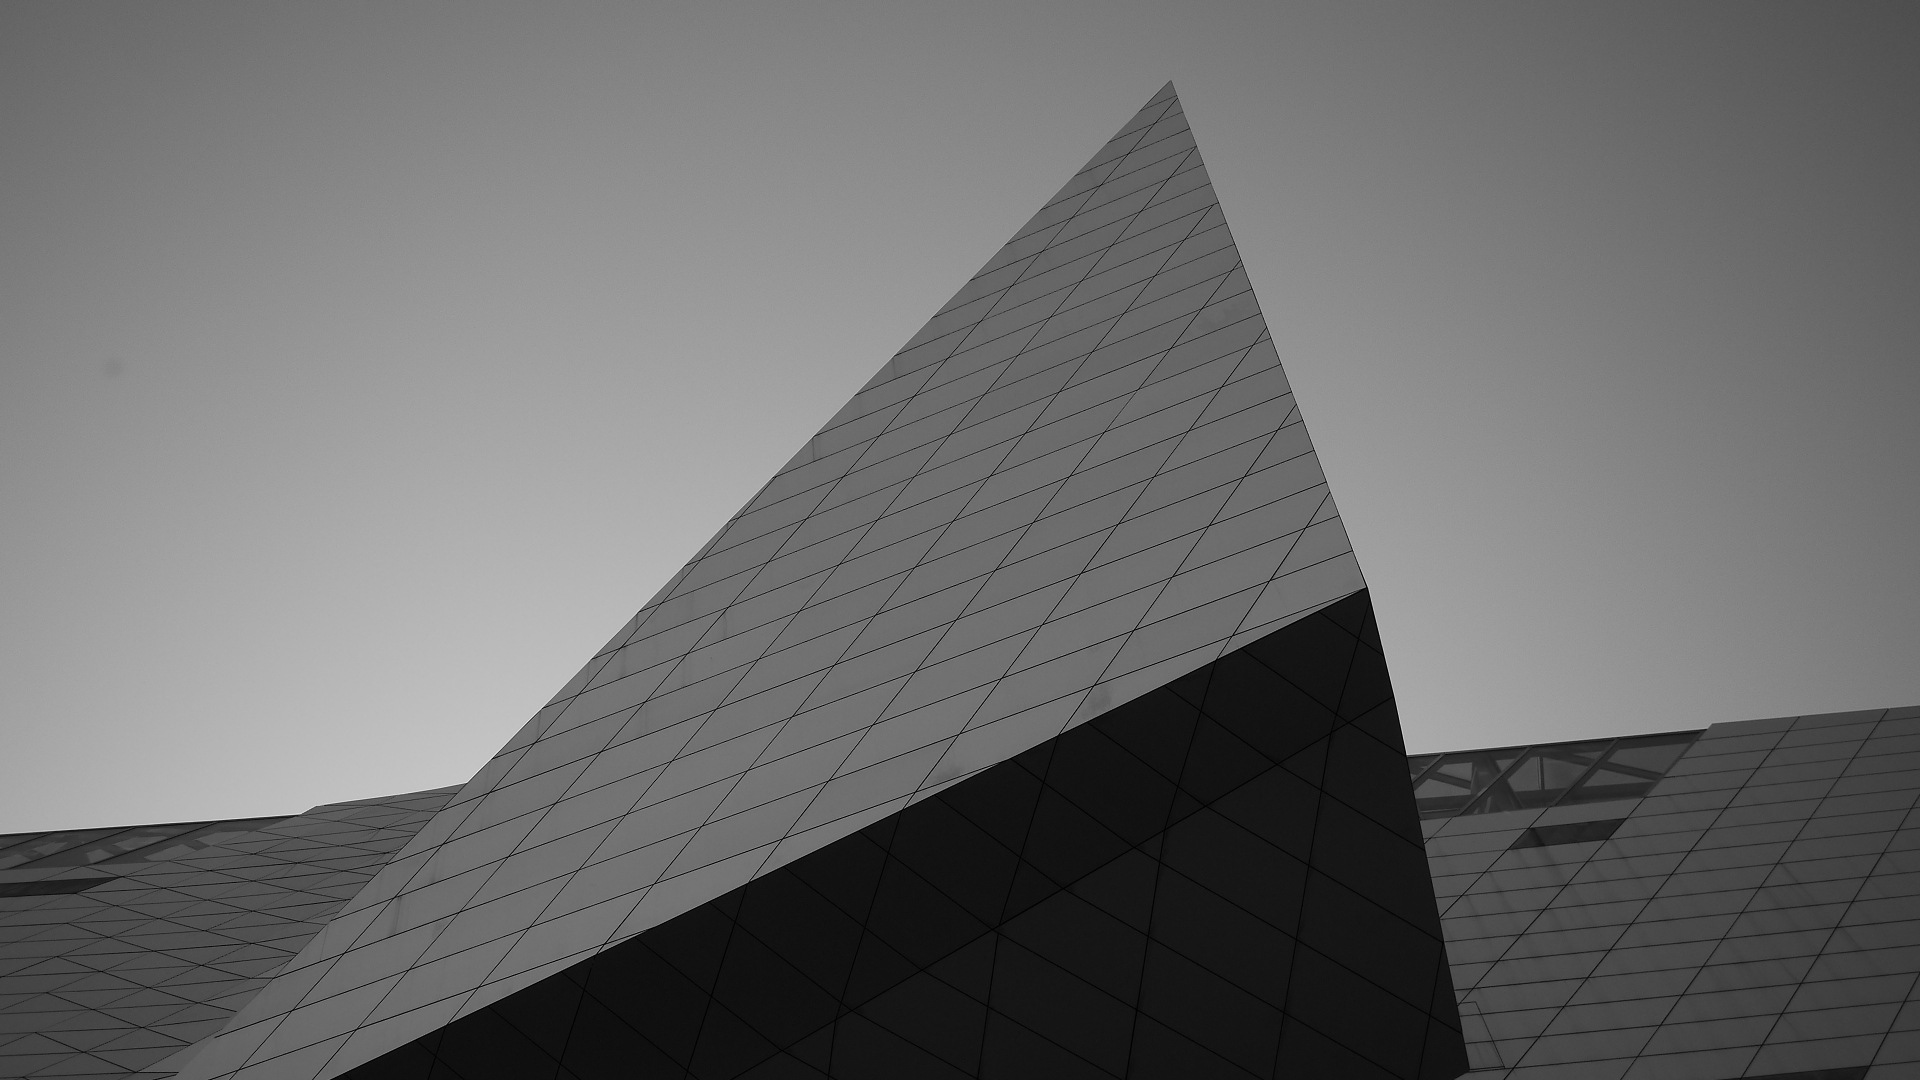 Triangulaire by christophepoidevin